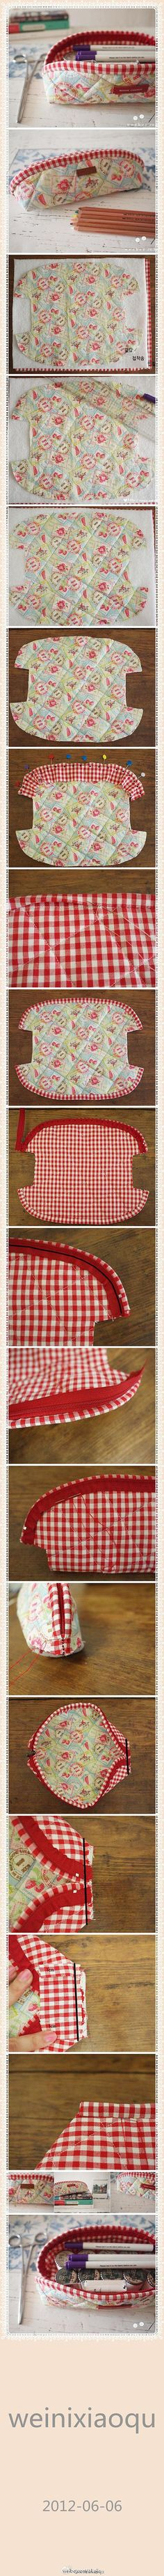 pinterest + pamkittypicnic = happiness - Pretty by Hand -